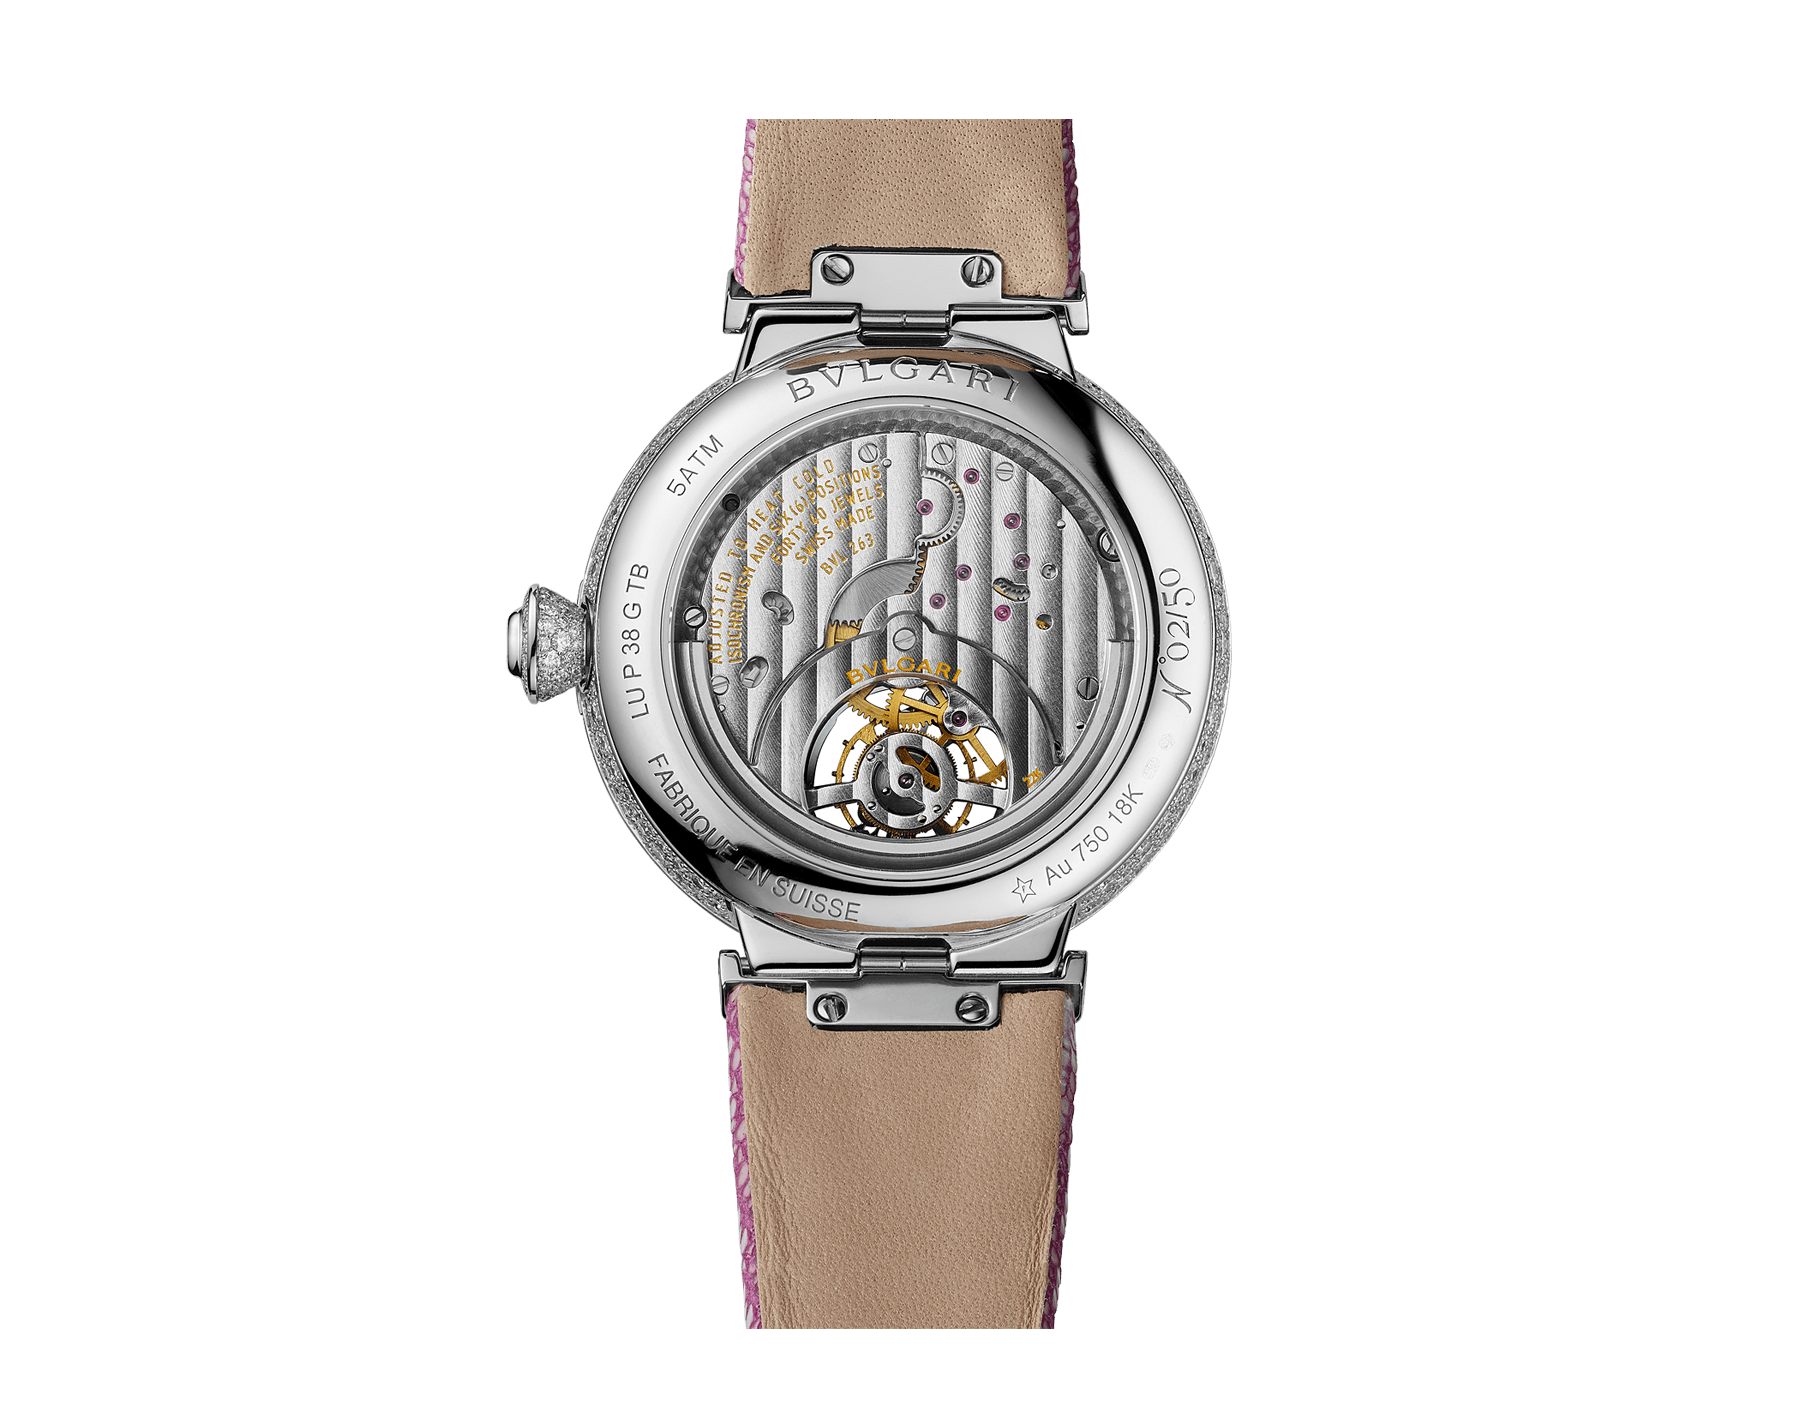 LVCEA Tourbillon Limited Edition watch with mechanical manufacture movement, automatic winding, see-through tourbillon, 18 kt white gold case set with round brilliant-cut diamonds, full-pavé dial with round brilliant-cut diamonds and pink colour finish, and pink galuchat bracelet 102887 image 3